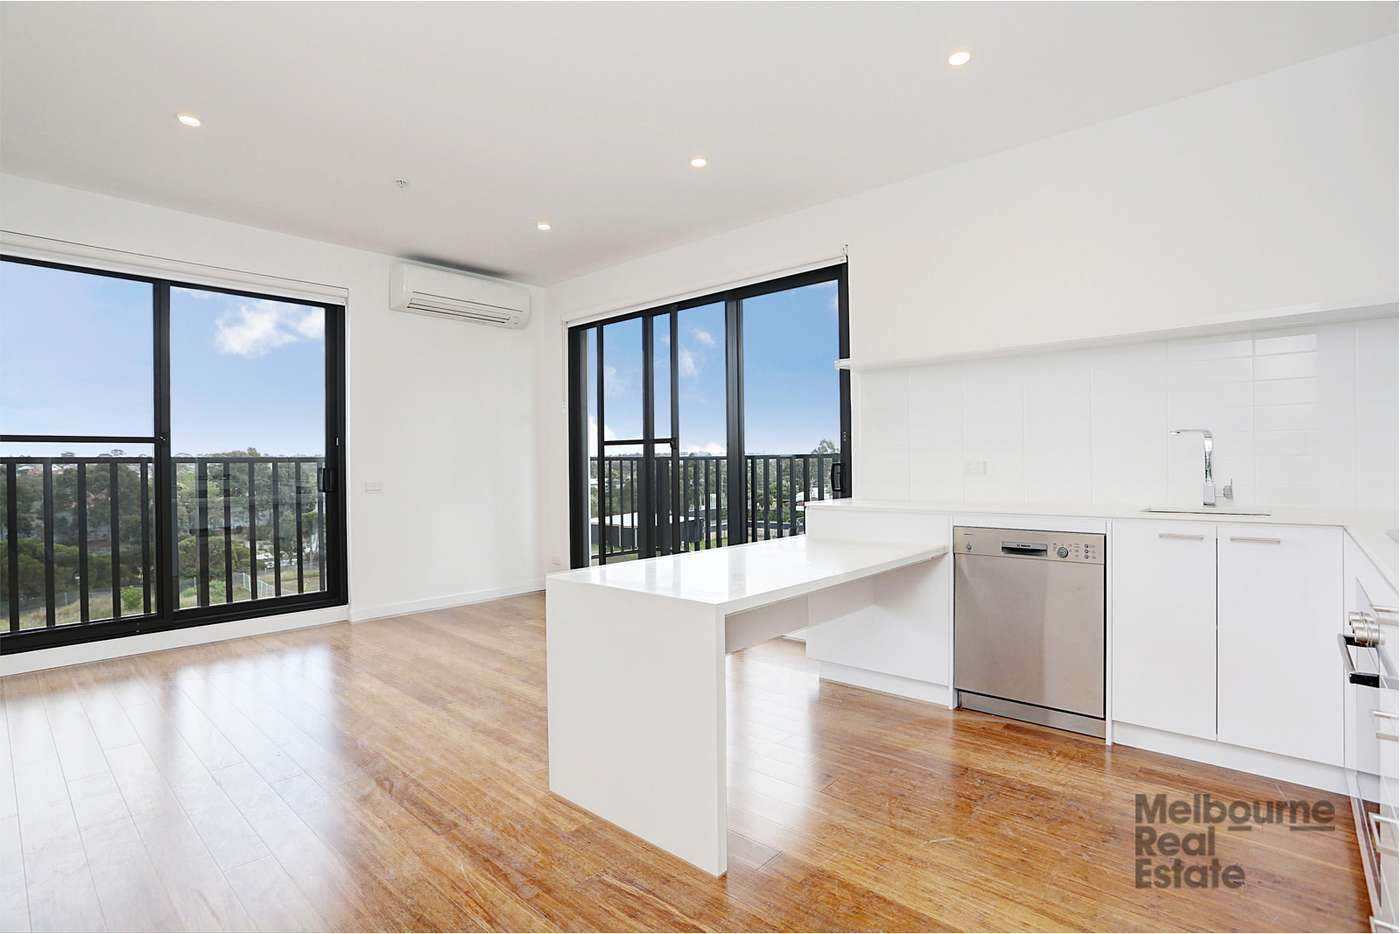 Main view of Homely apartment listing, 308/12 Olive York Way, Brunswick West VIC 3055